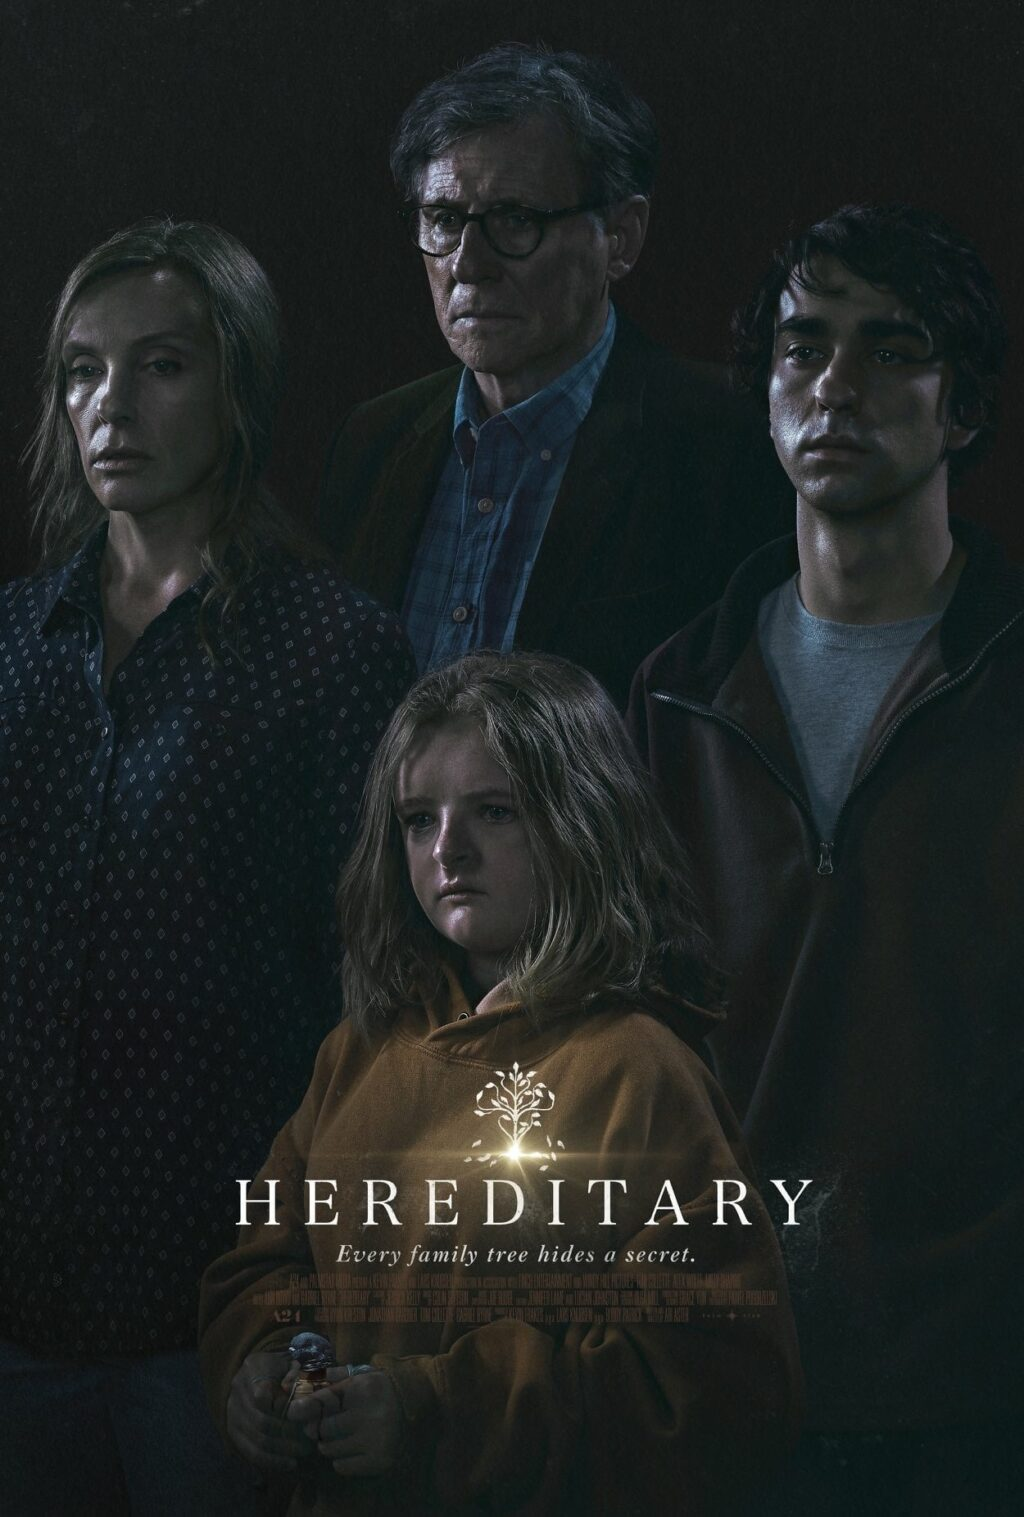 Hereditary Poster 2 1024x1517 - HEREDITARY Star MILLY SHAPIRO to Make 1st Horror Convention Appearance This Summer